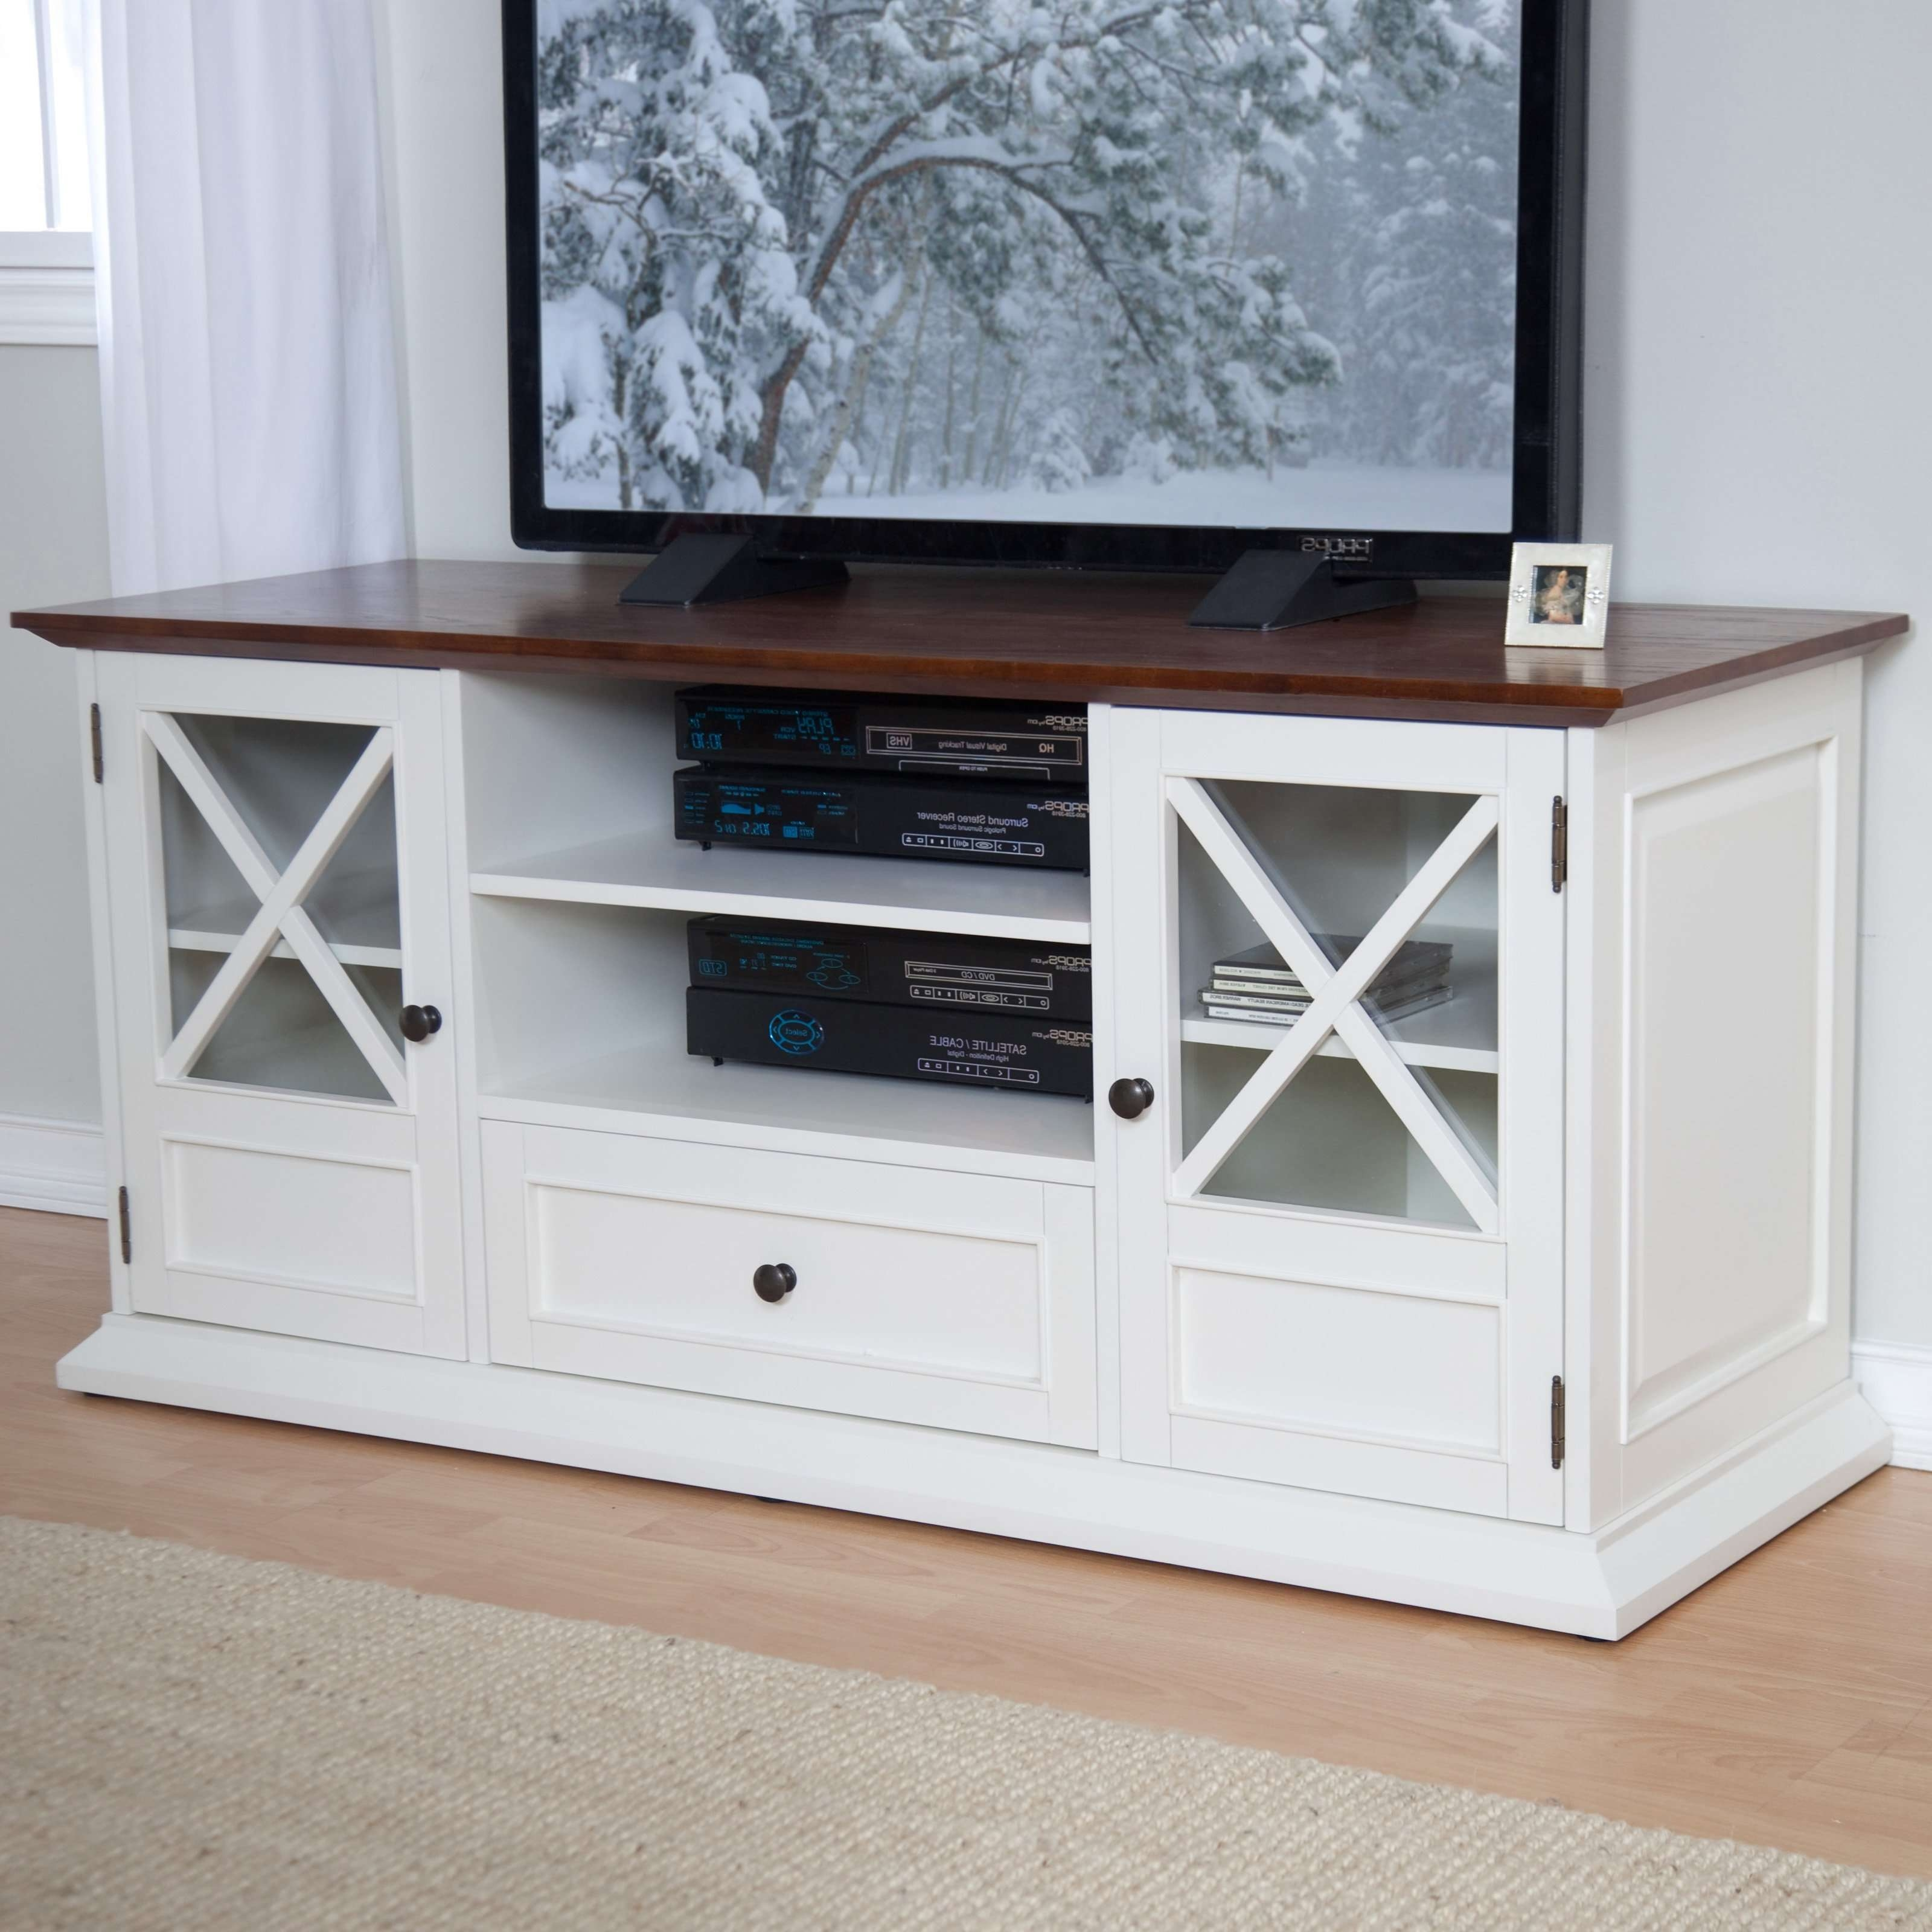 Tv Stands & Entertainment Centers | Hayneedle In White Rustic Tv Stands (View 13 of 15)